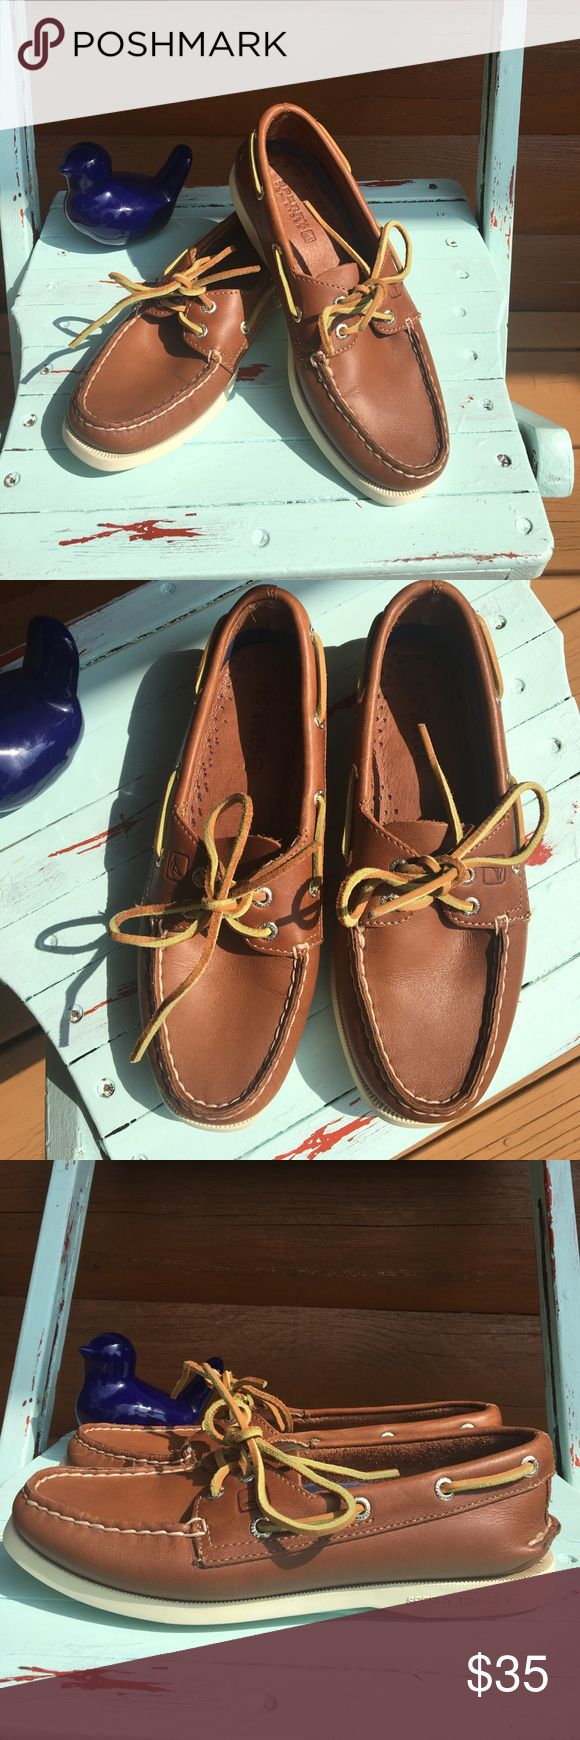 Leather Sperry boat shoes Like new leather Sperry boat shoes with white soles. Sperry Top-Sider Shoes Flats & Loafers